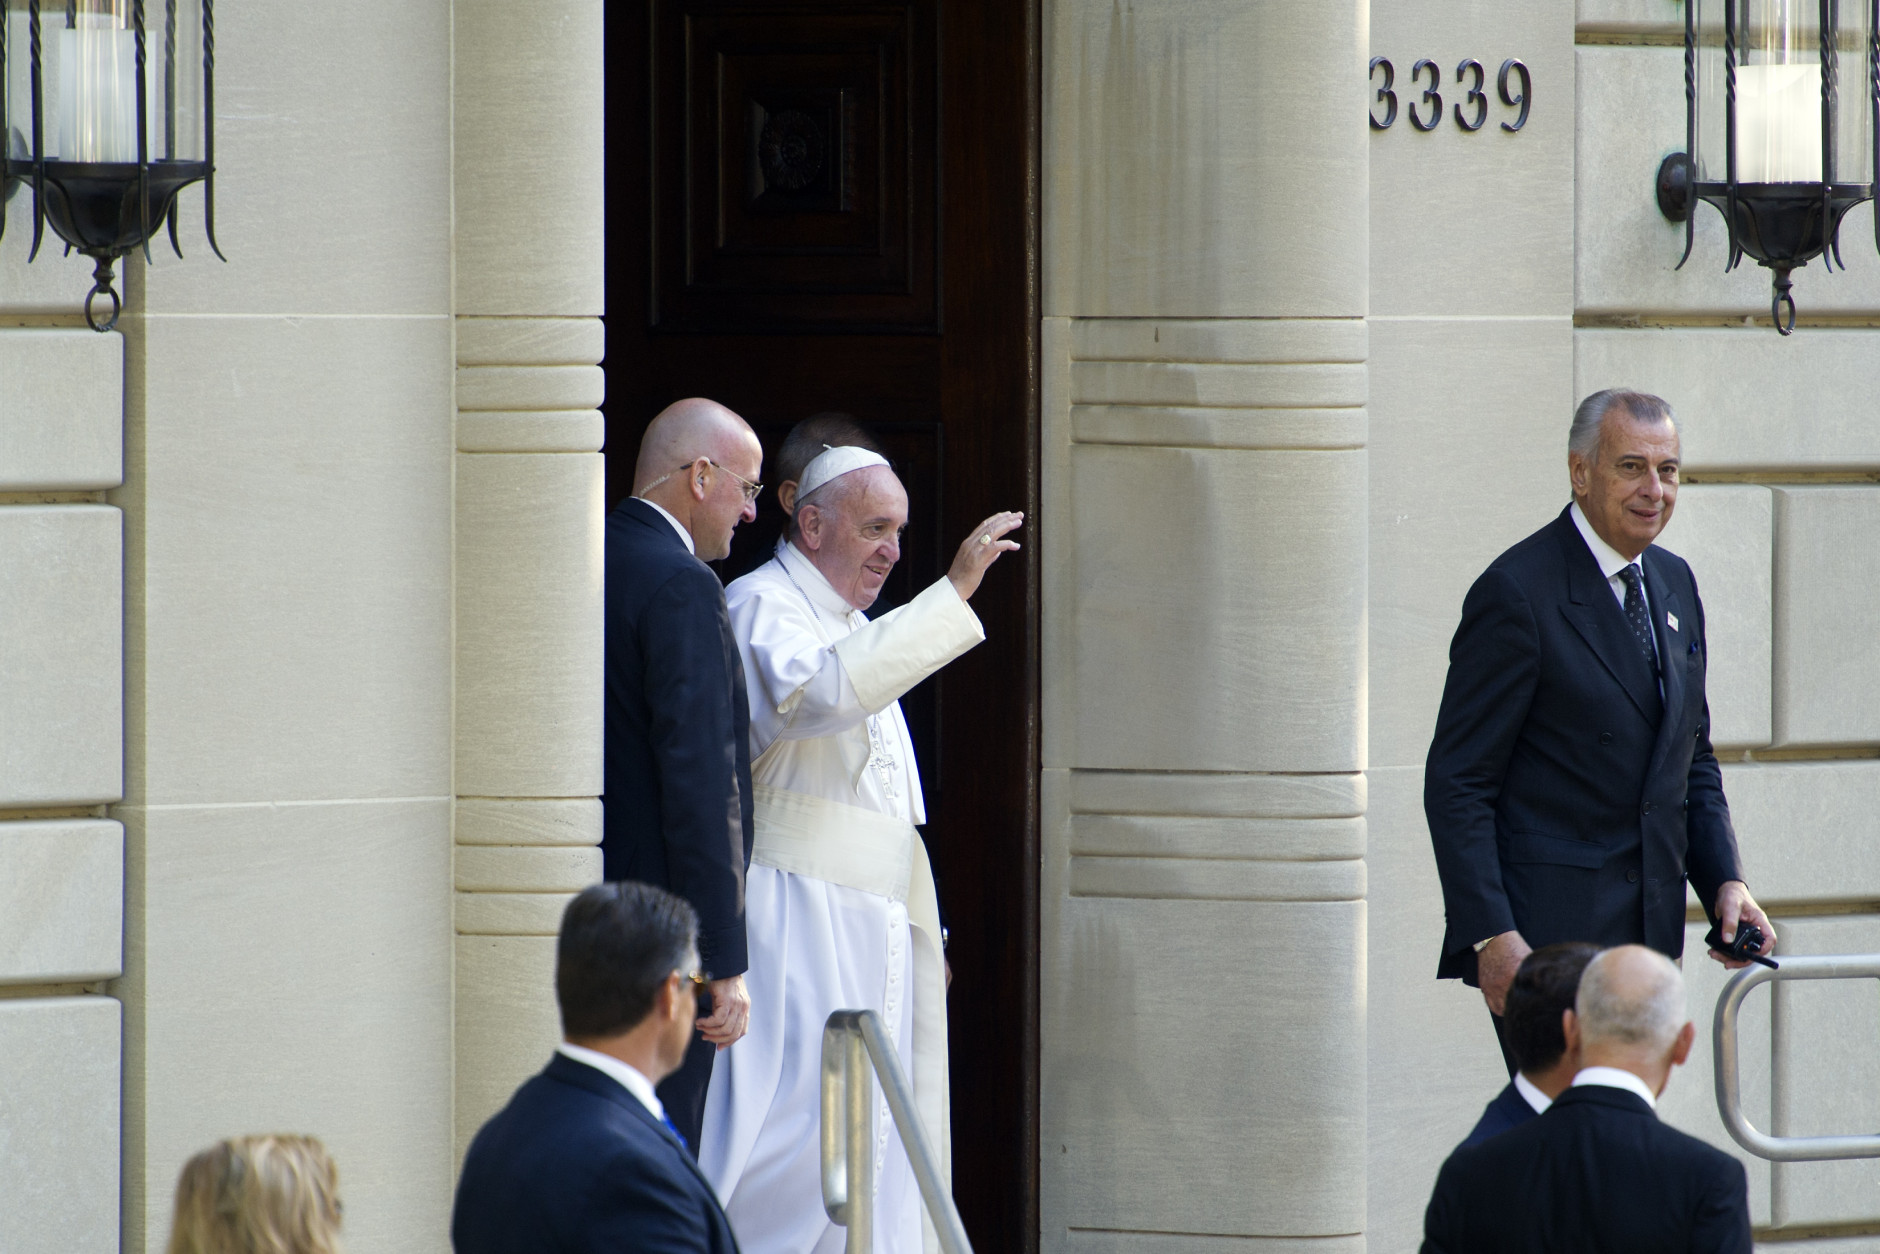 Pope Francis waves as he departs the Apostolic Nunciature, the Vatican's diplomatic mission in Washington, Wednesday, Sept. 23, 2015, for the White House where President Barack Obama will host a state arrival ceremony.  (AP Photo/Cliff Owen)